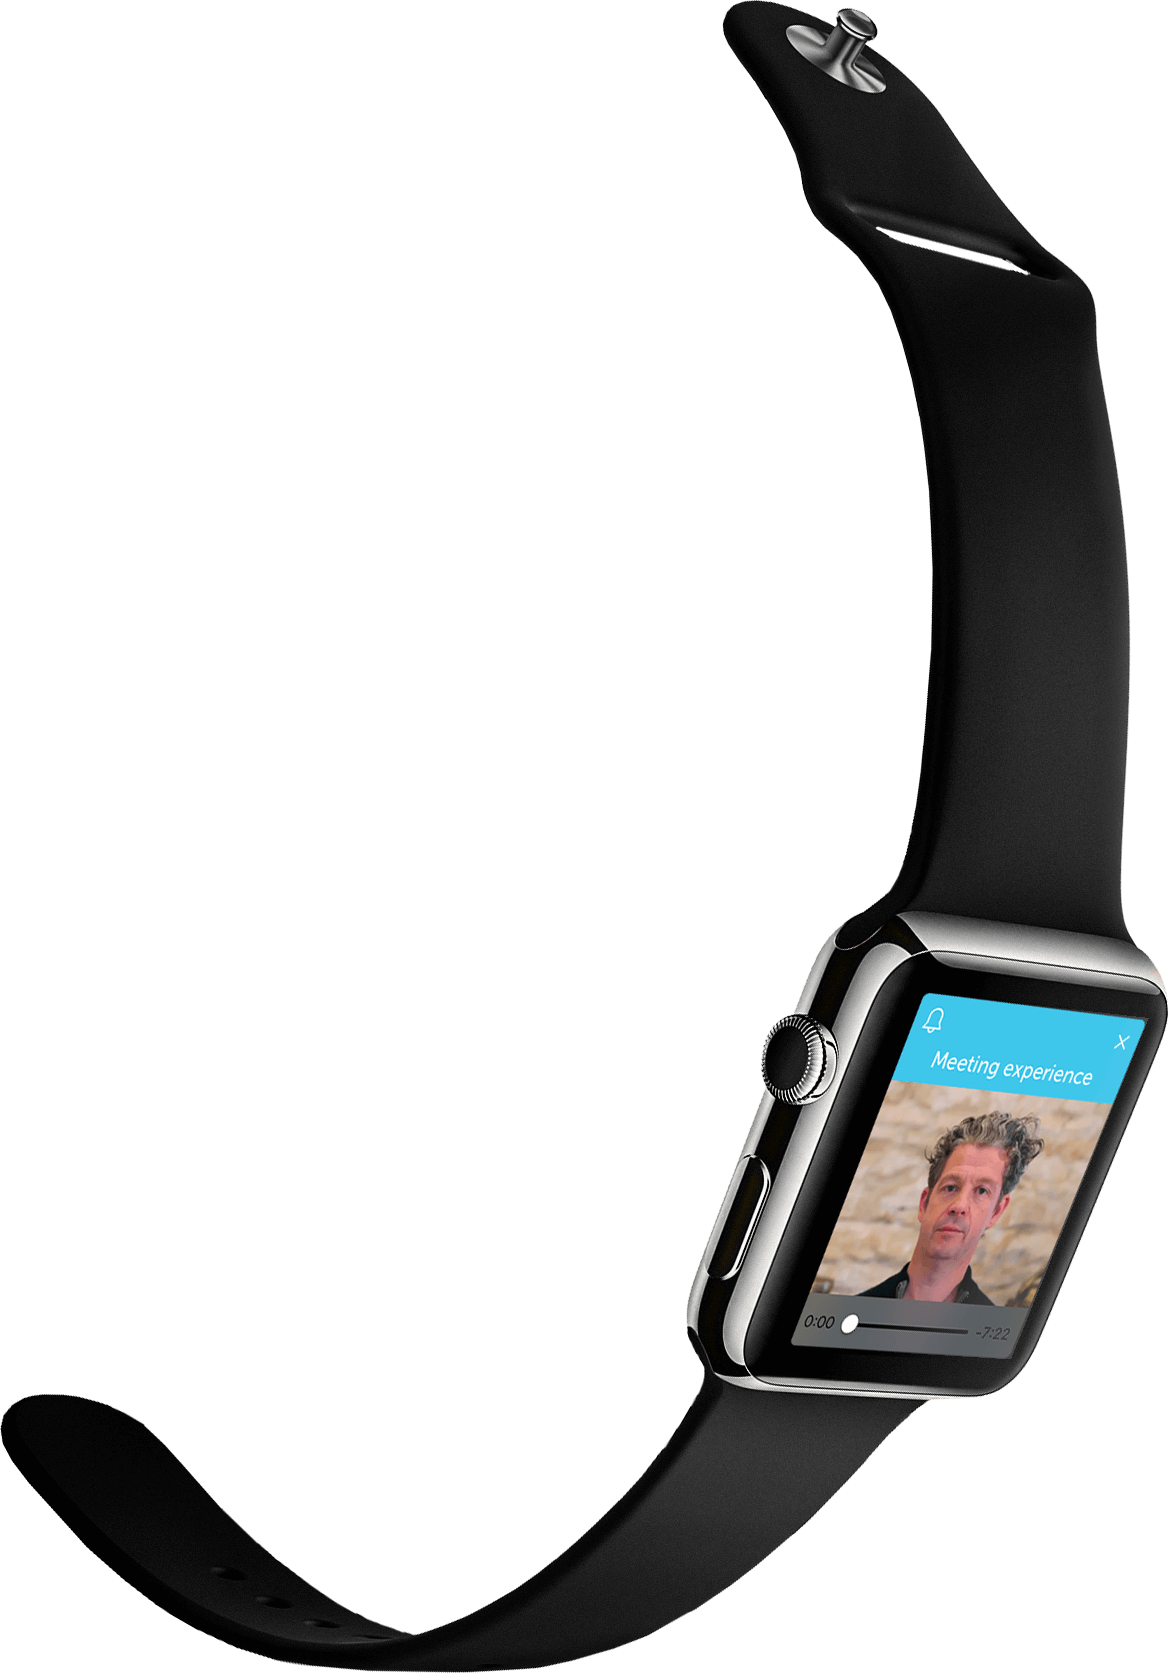 Apple Watch - Parents Nearby